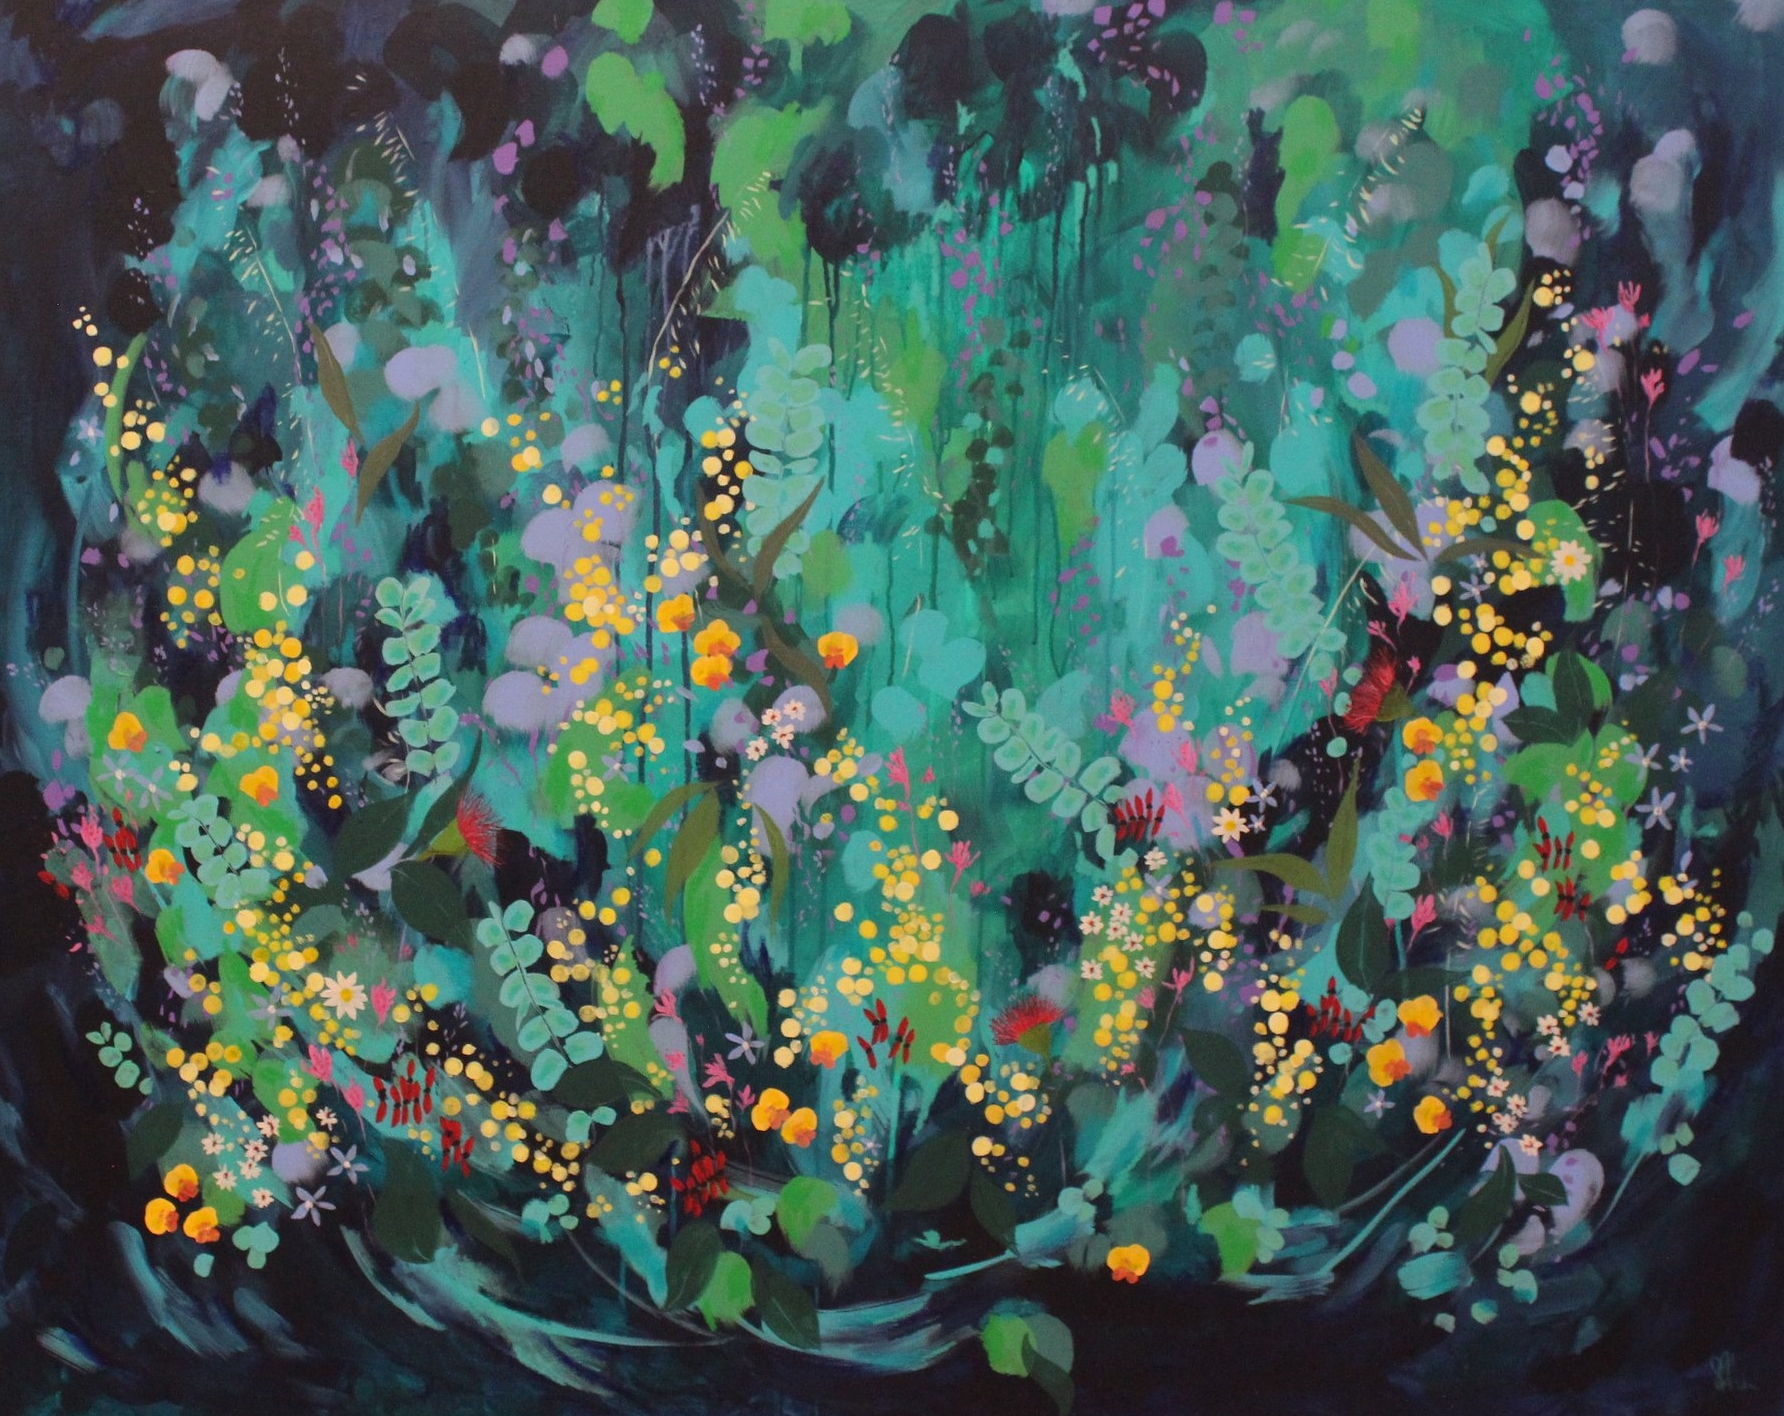 Susan Nethercote,  Flowers for Maude,  2018, acrylic and oil pastel on canvas, 122 x 153cm.